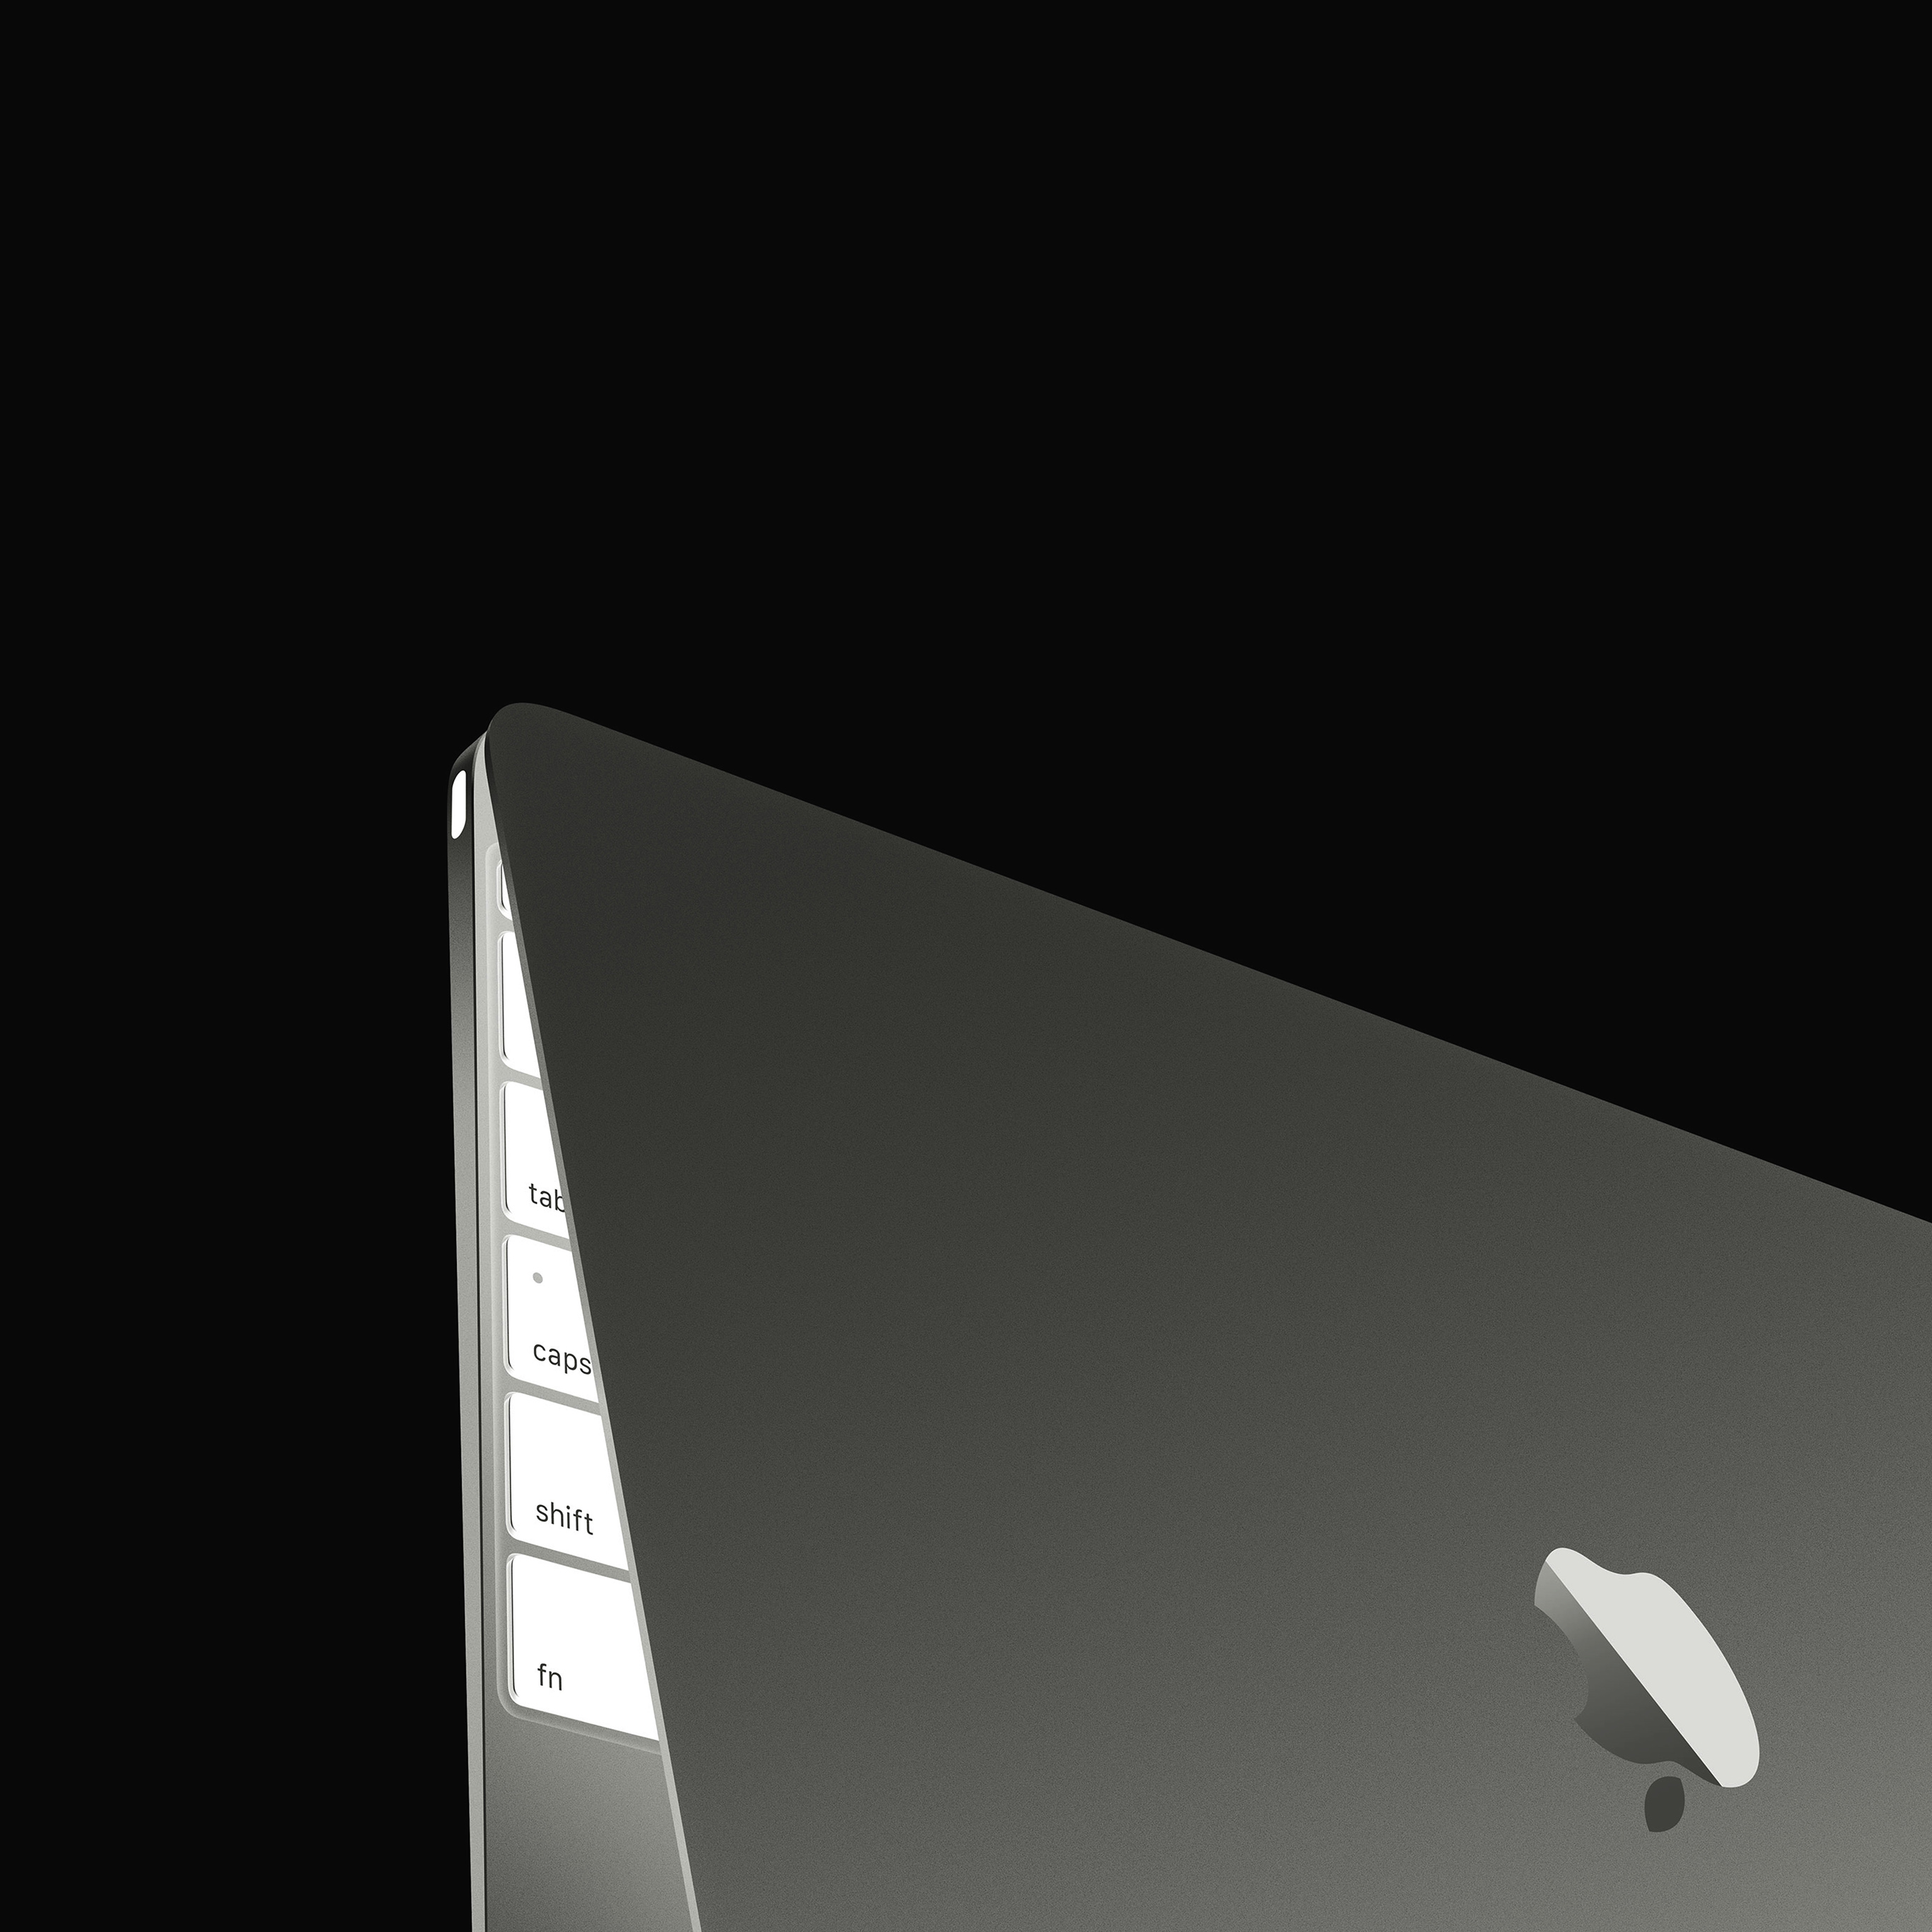 no-usb-macbook-dark-apple-40-wallpaper